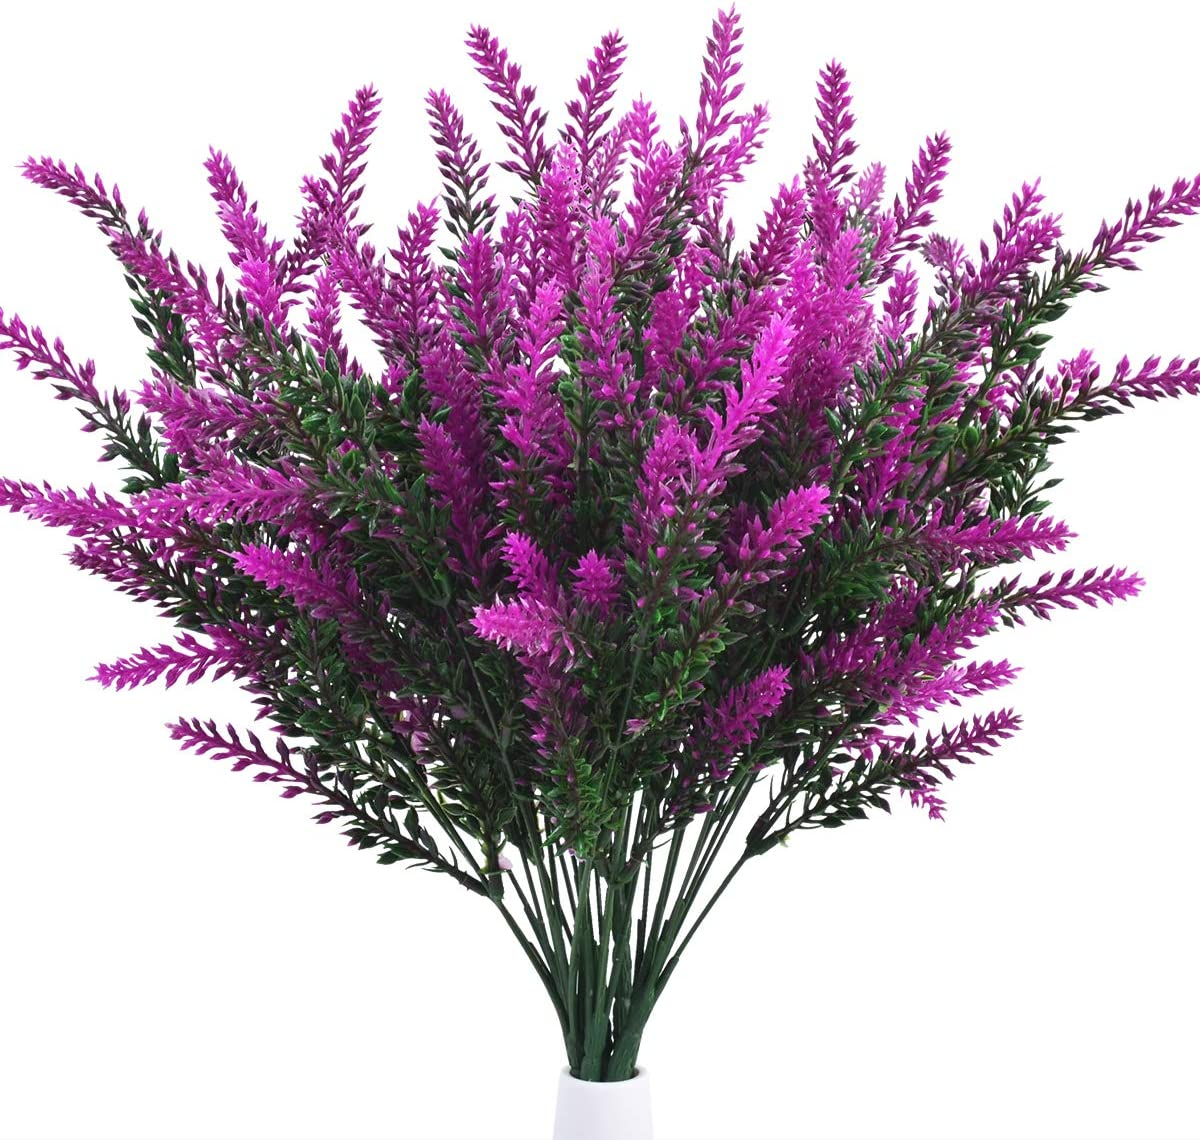 8 Bundles Artificial Lavender Outdoor Fake Flowers UV Resistant Plants, Faux Plastic Flowers Greenery Shrubs Plants for Indoor Outside Hanging Planter Home Wedding Garden Farmhouse Decor (Magenta)